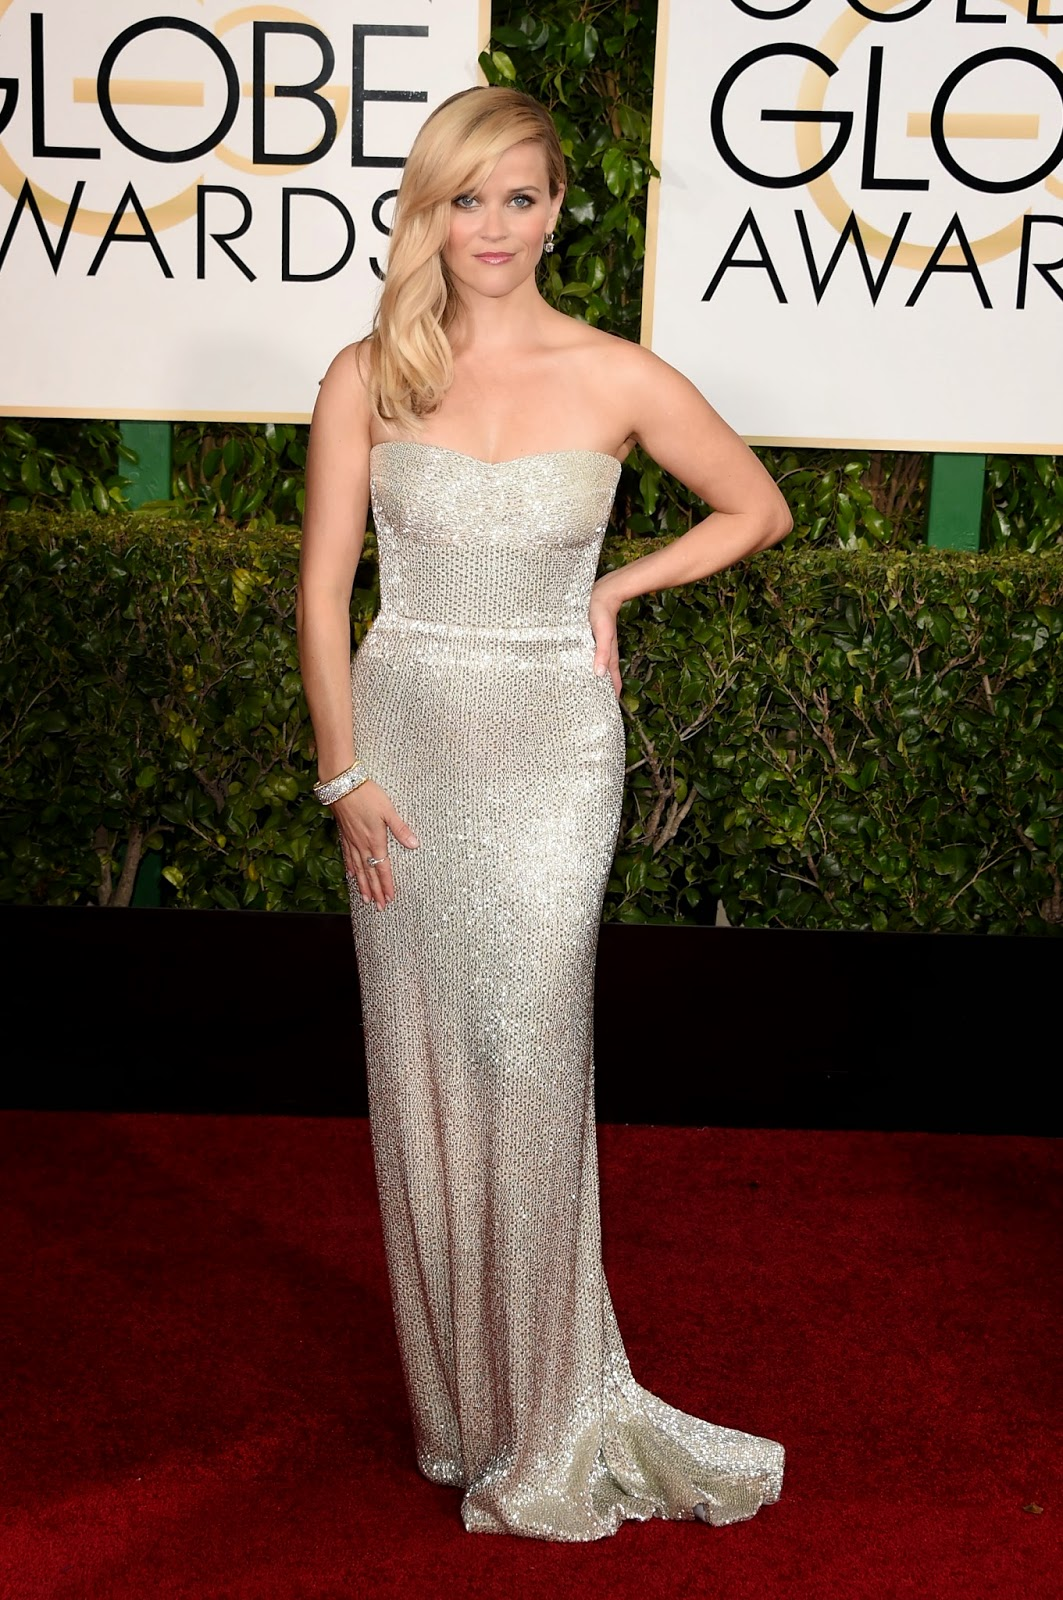 Reese Witherspoon best dressed at Golden Globe Awards 2015